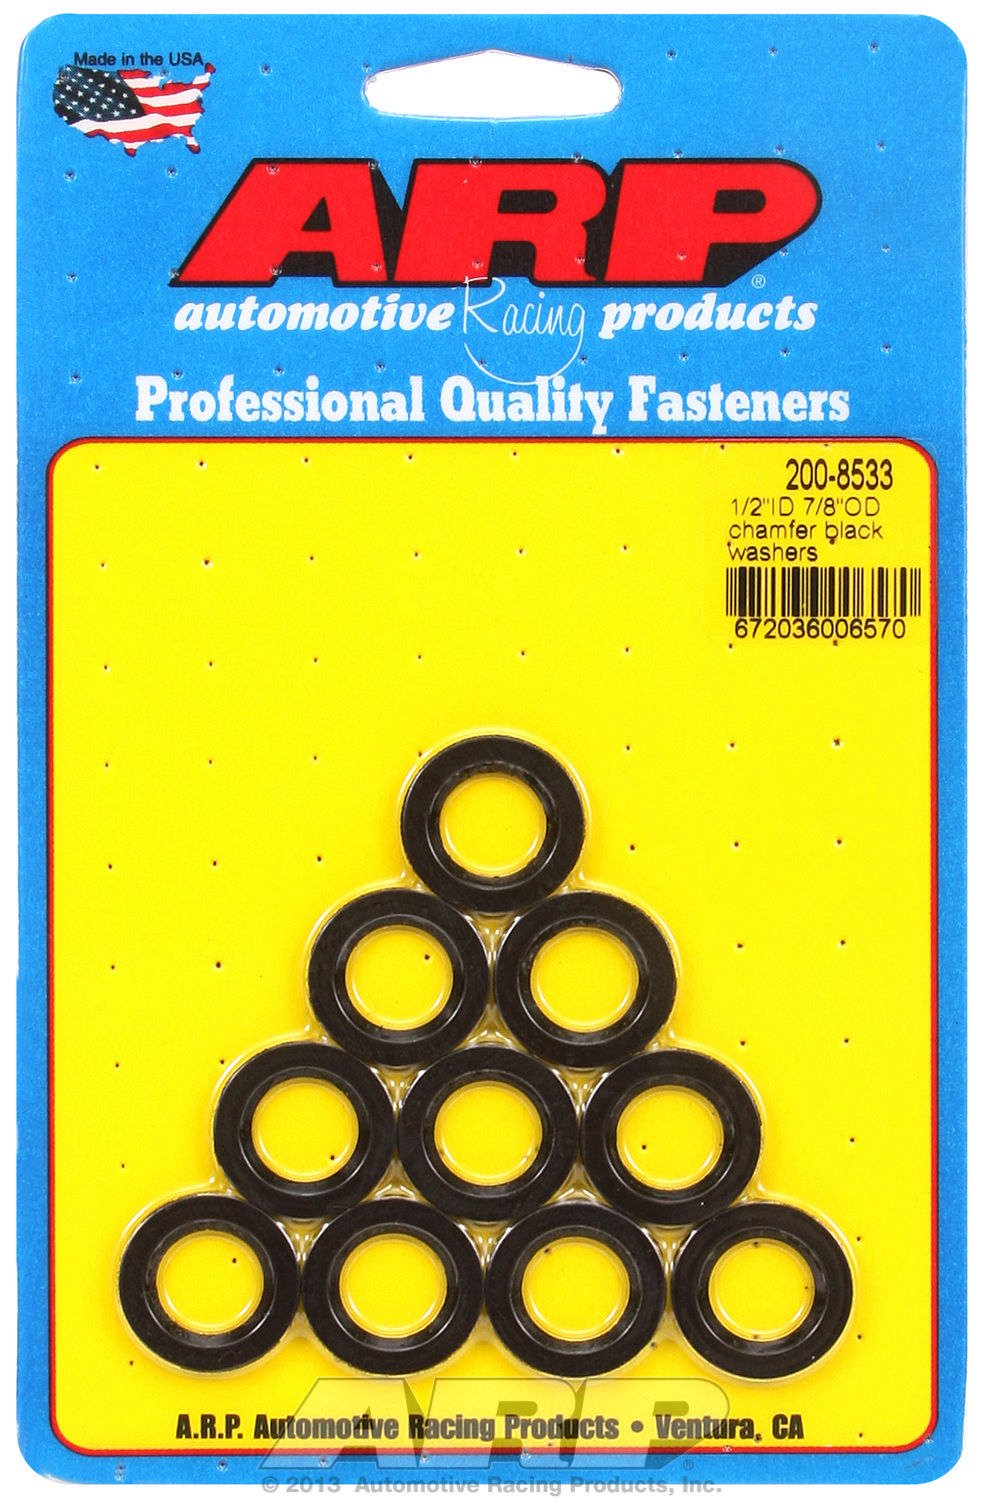 ARP 2008533 10-Pack Of Special Purpose Washers, 1/2' Inside Diameter, 7/8' Outside Diameter.120' Thick 1/2 Inside Diameter 7/8 Outside Diameter.120 Thick 200-8533